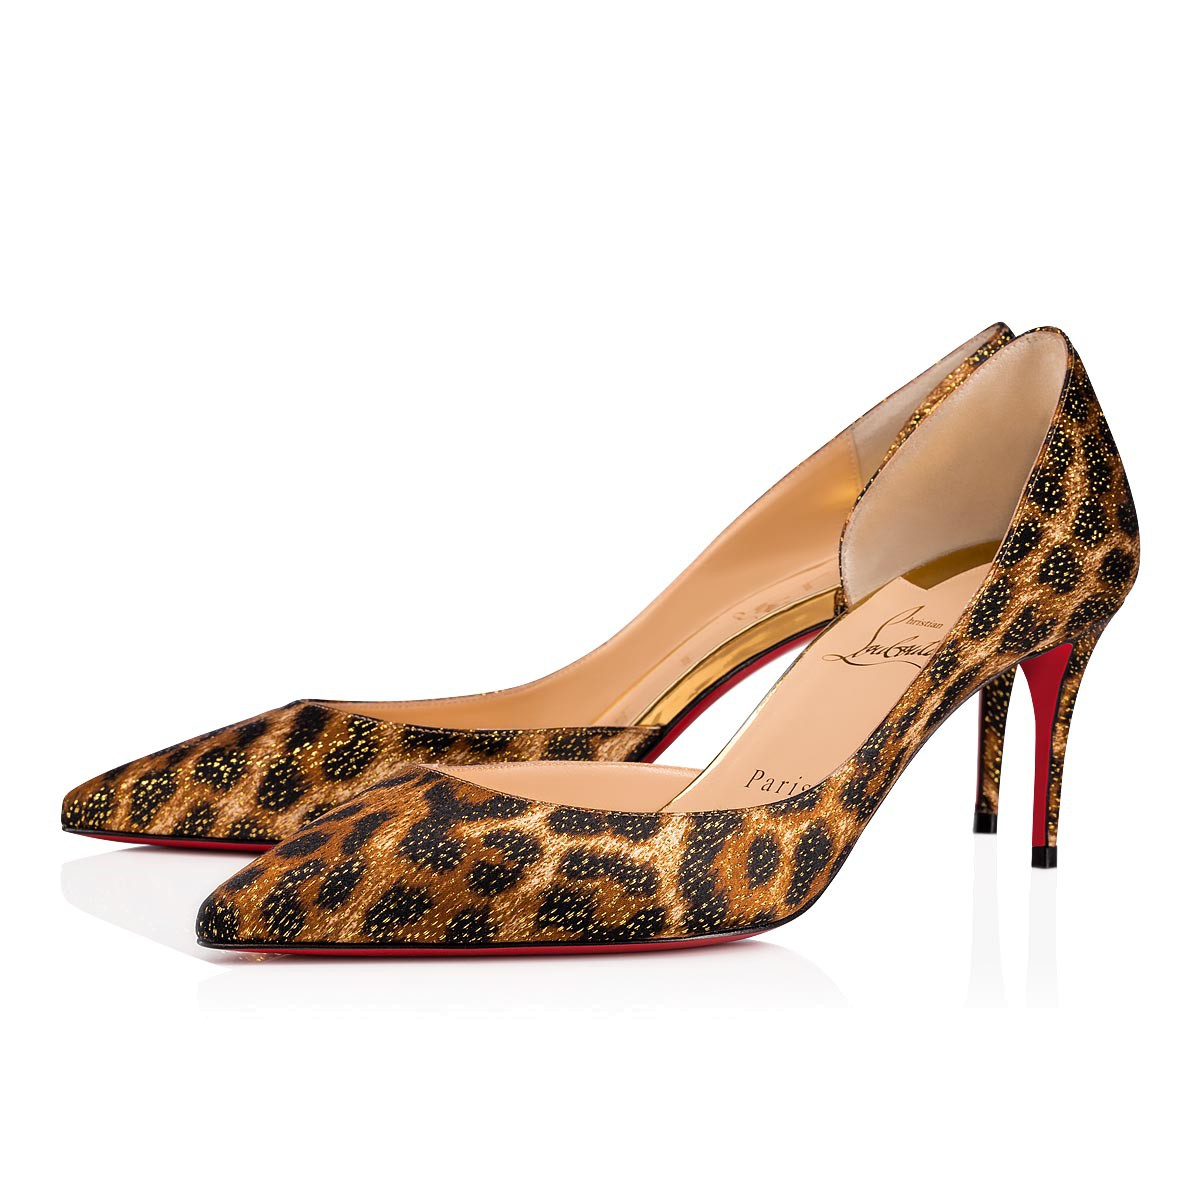 Women Shoes - Iriza - Christian Louboutin